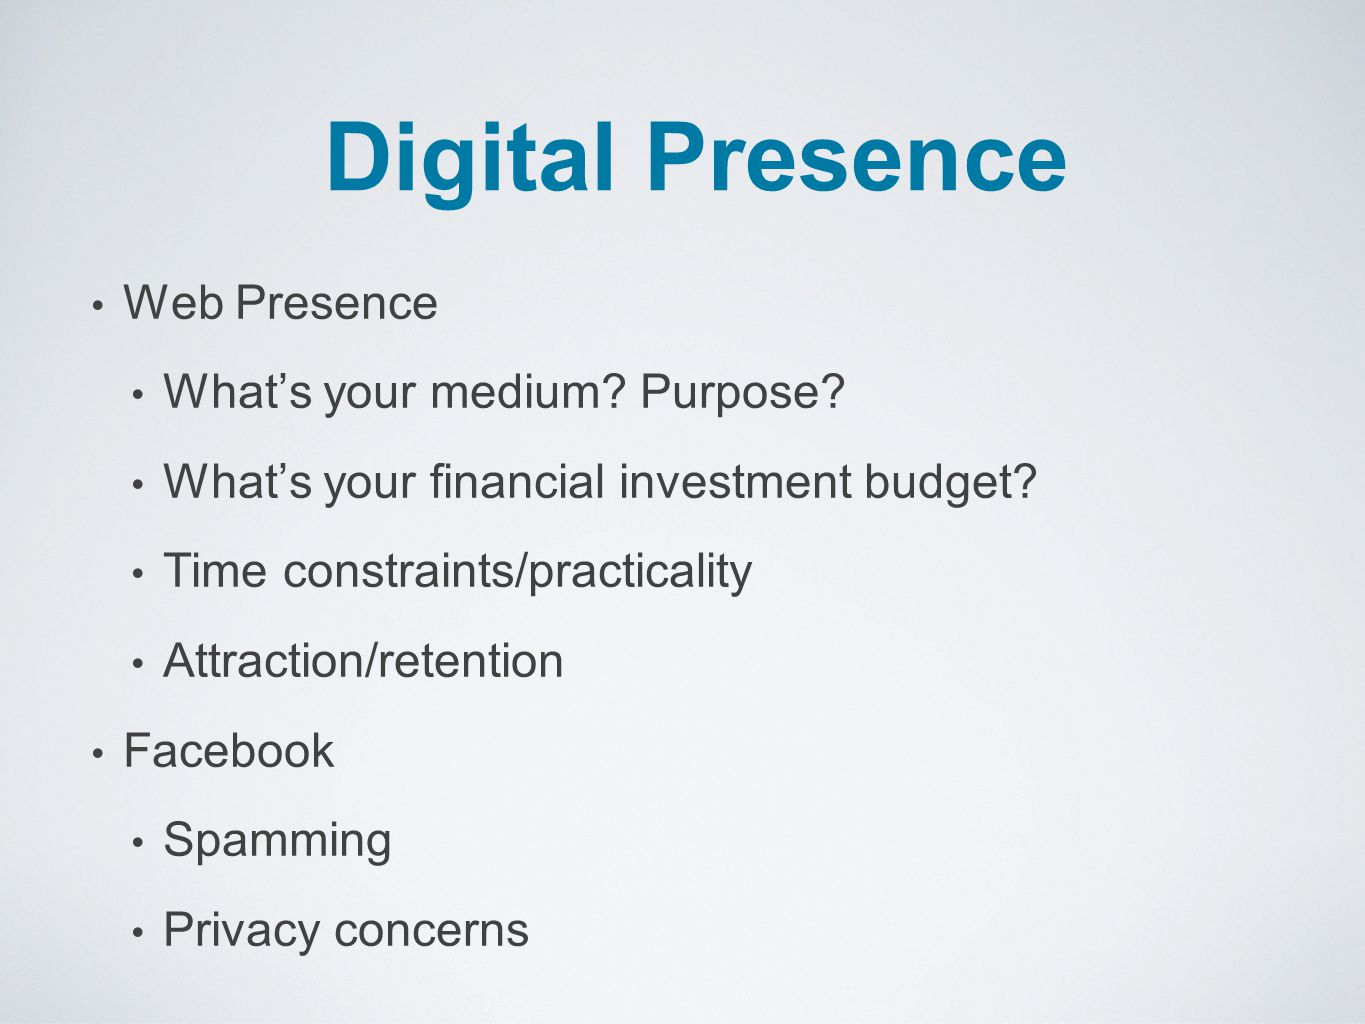 Digital Presence Web Presence What's your medium? Purpose? What's your financial investment budget? Time constraints/practicality Attraction/retention